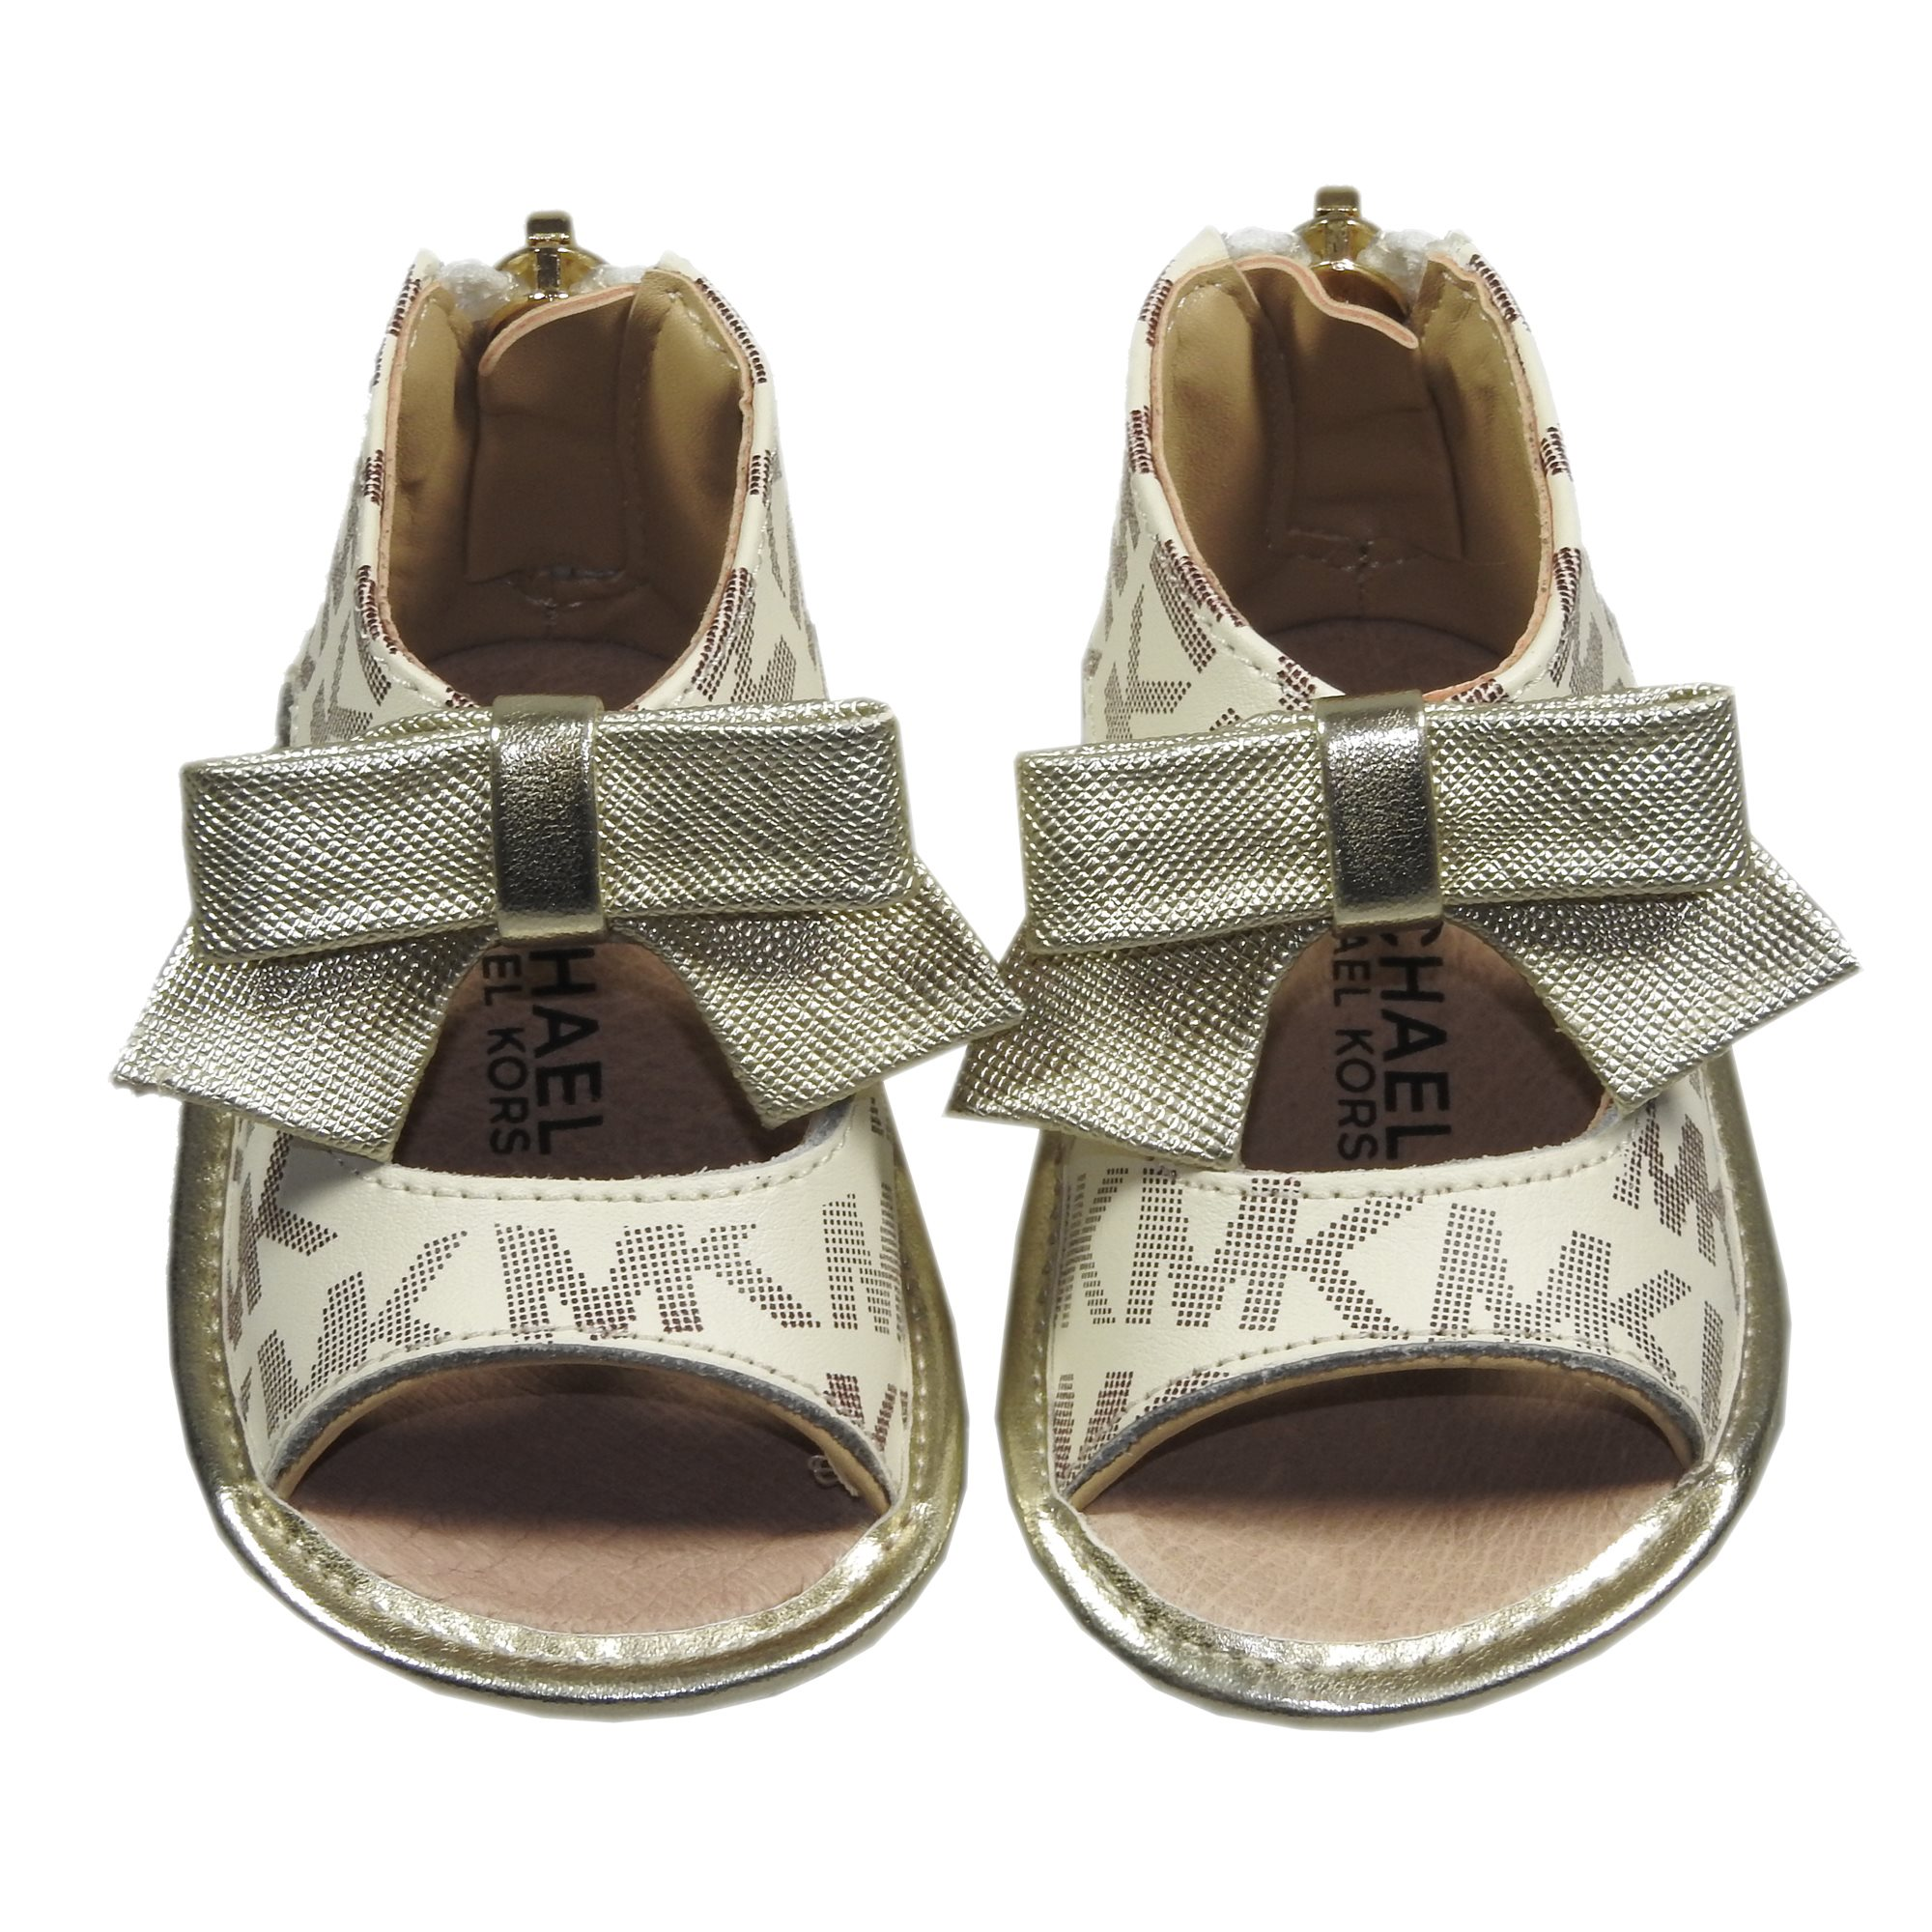 Producten MK baby sandaal logo La Boite Kids fashion & shoes